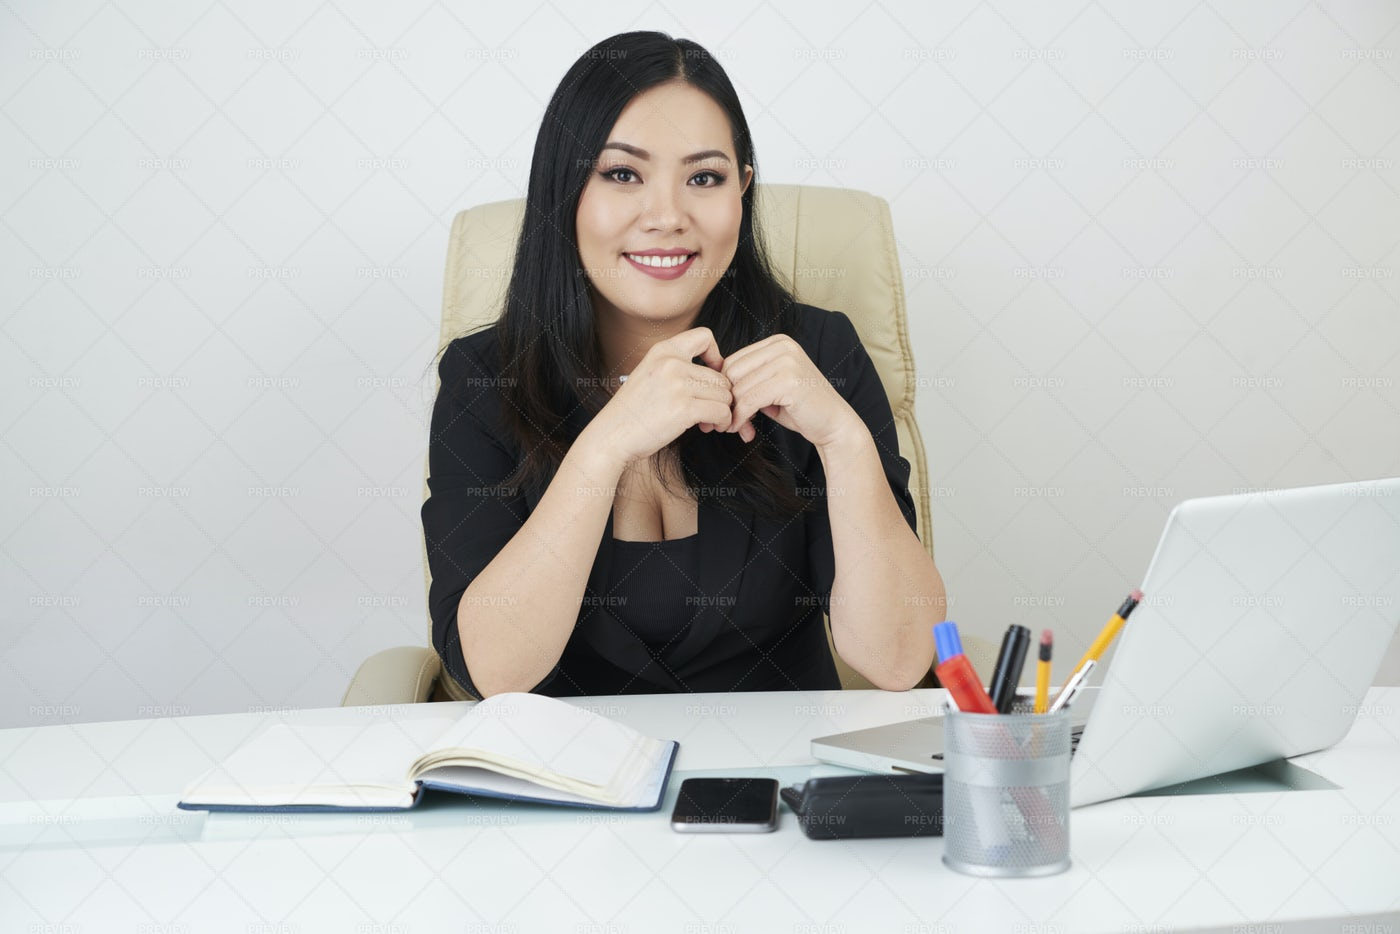 Office Manager Working At Office: Stock Photos